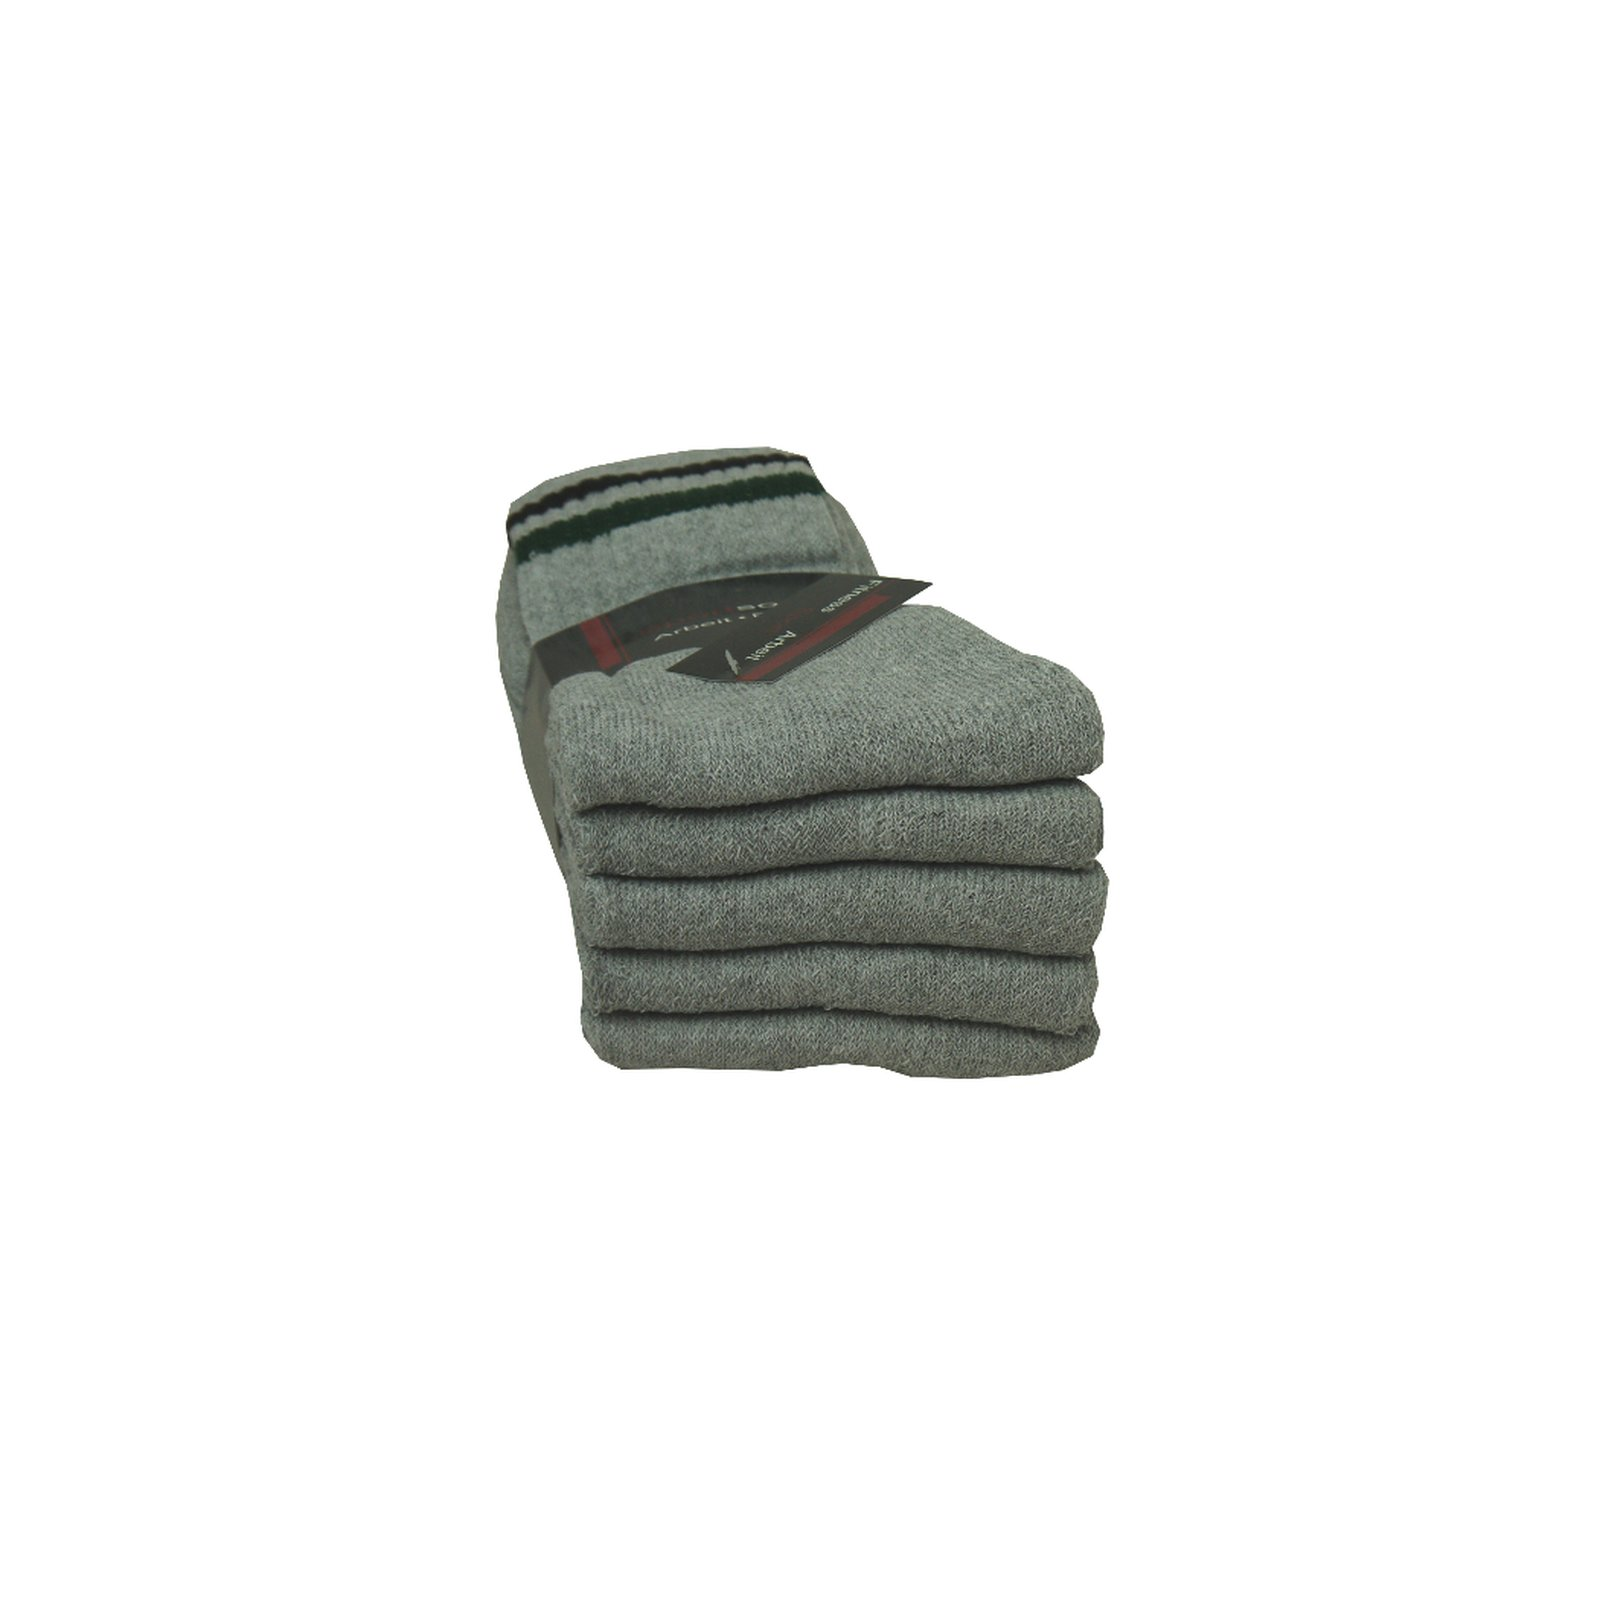 5 Paar Tennissocken in grau 39-42